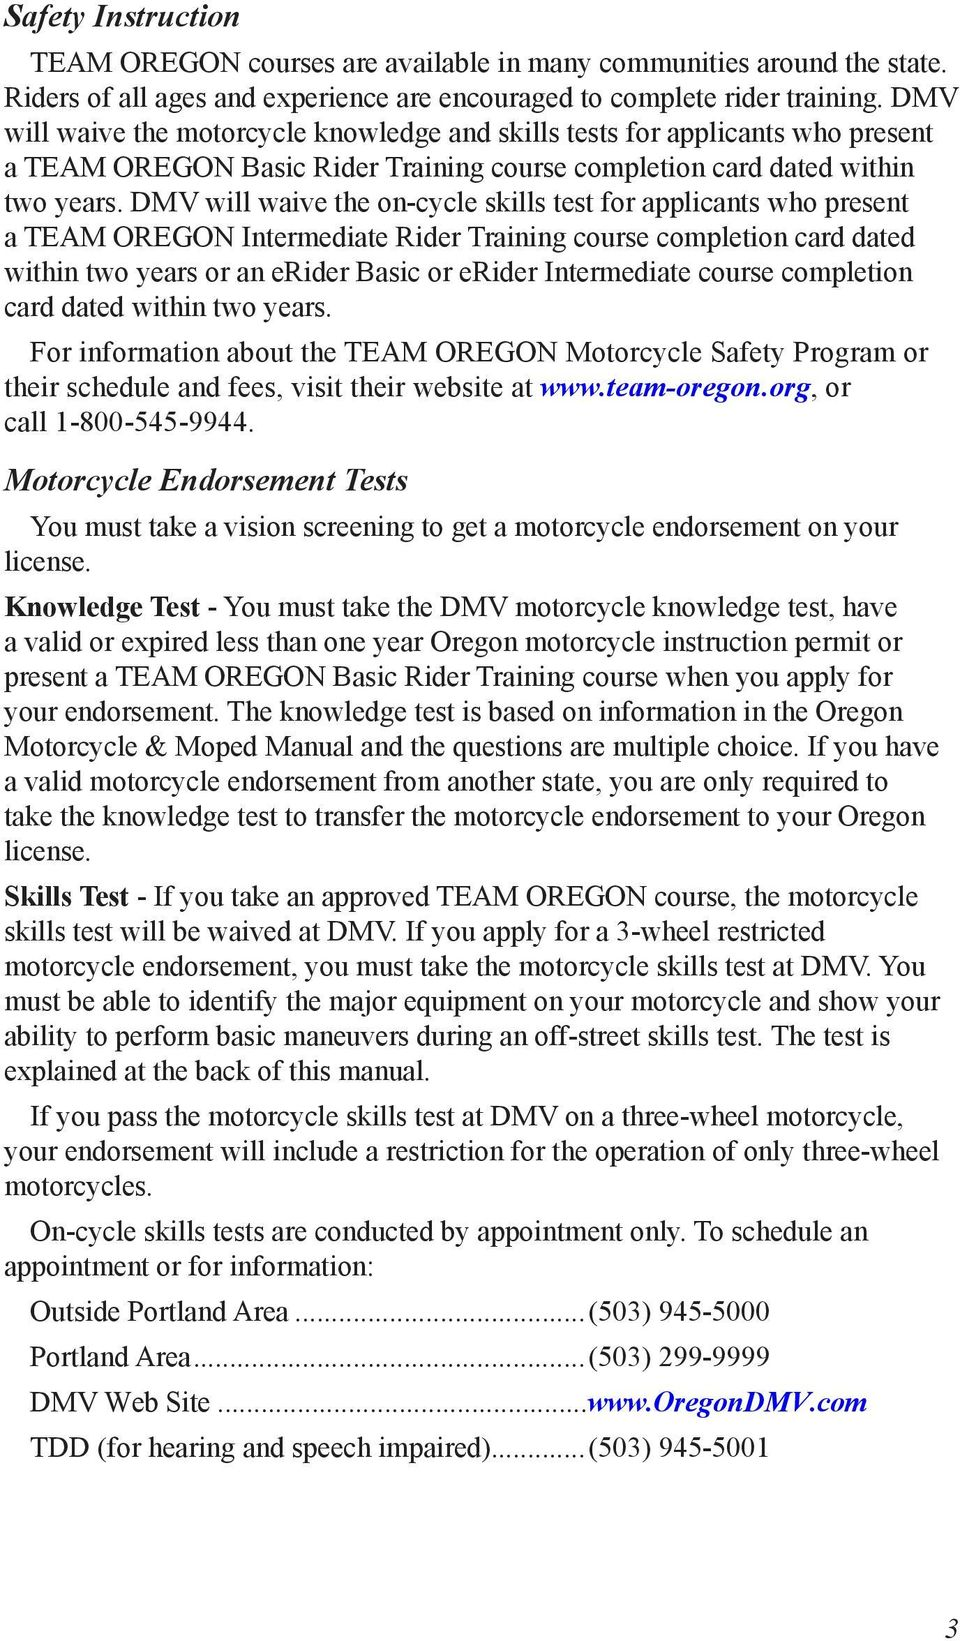 DMV will waive the on-cycle skills test for applicants who present a TEAM OREGON Intermediate Rider Training course completion card dated within two years or an erider Basic or erider Intermediate